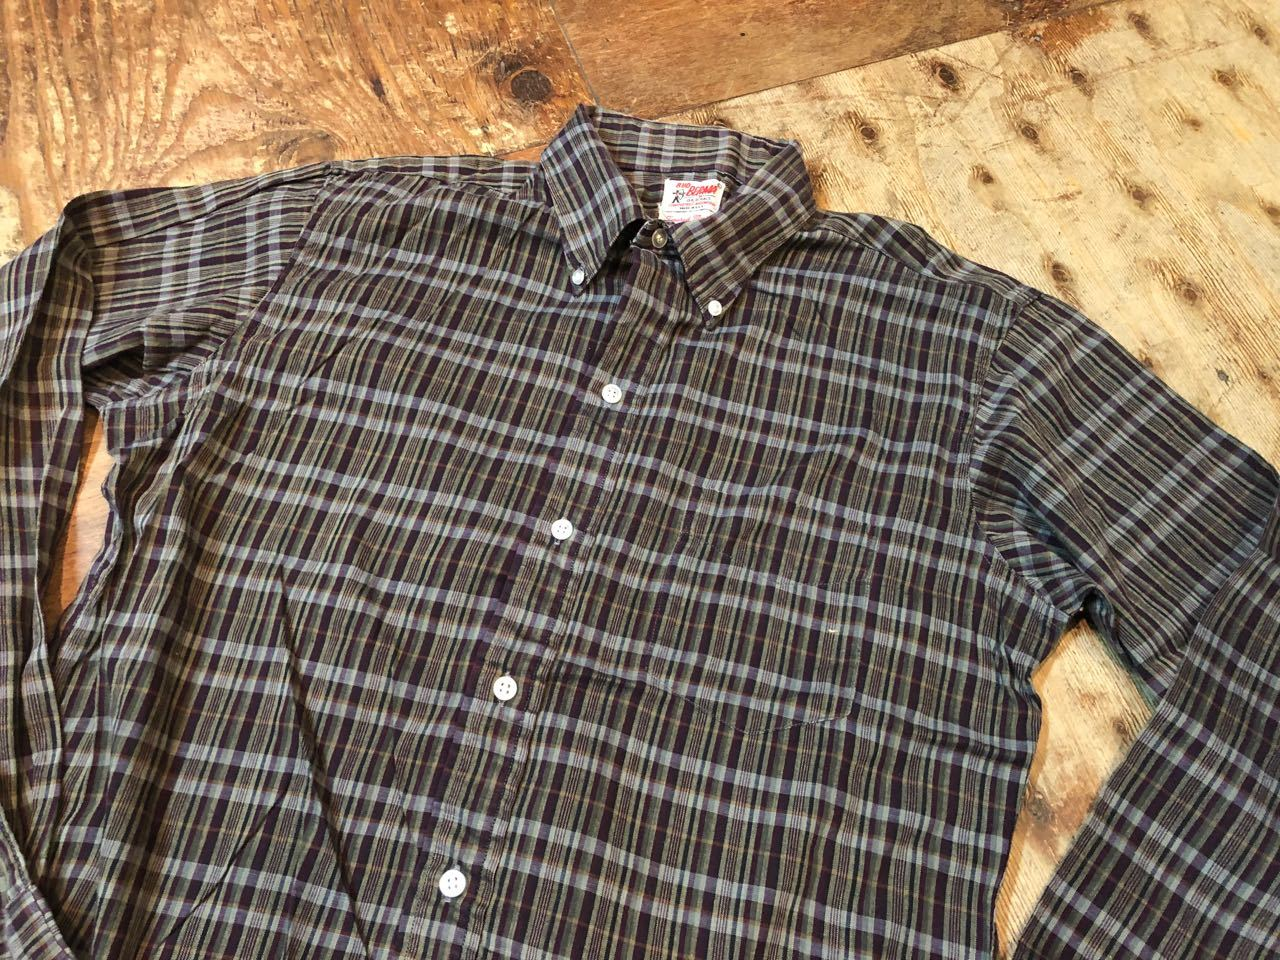 4月6日(土)入荷!60s BUD BERMA Tapered Model B.D シャツ!_c0144020_14230210.jpg